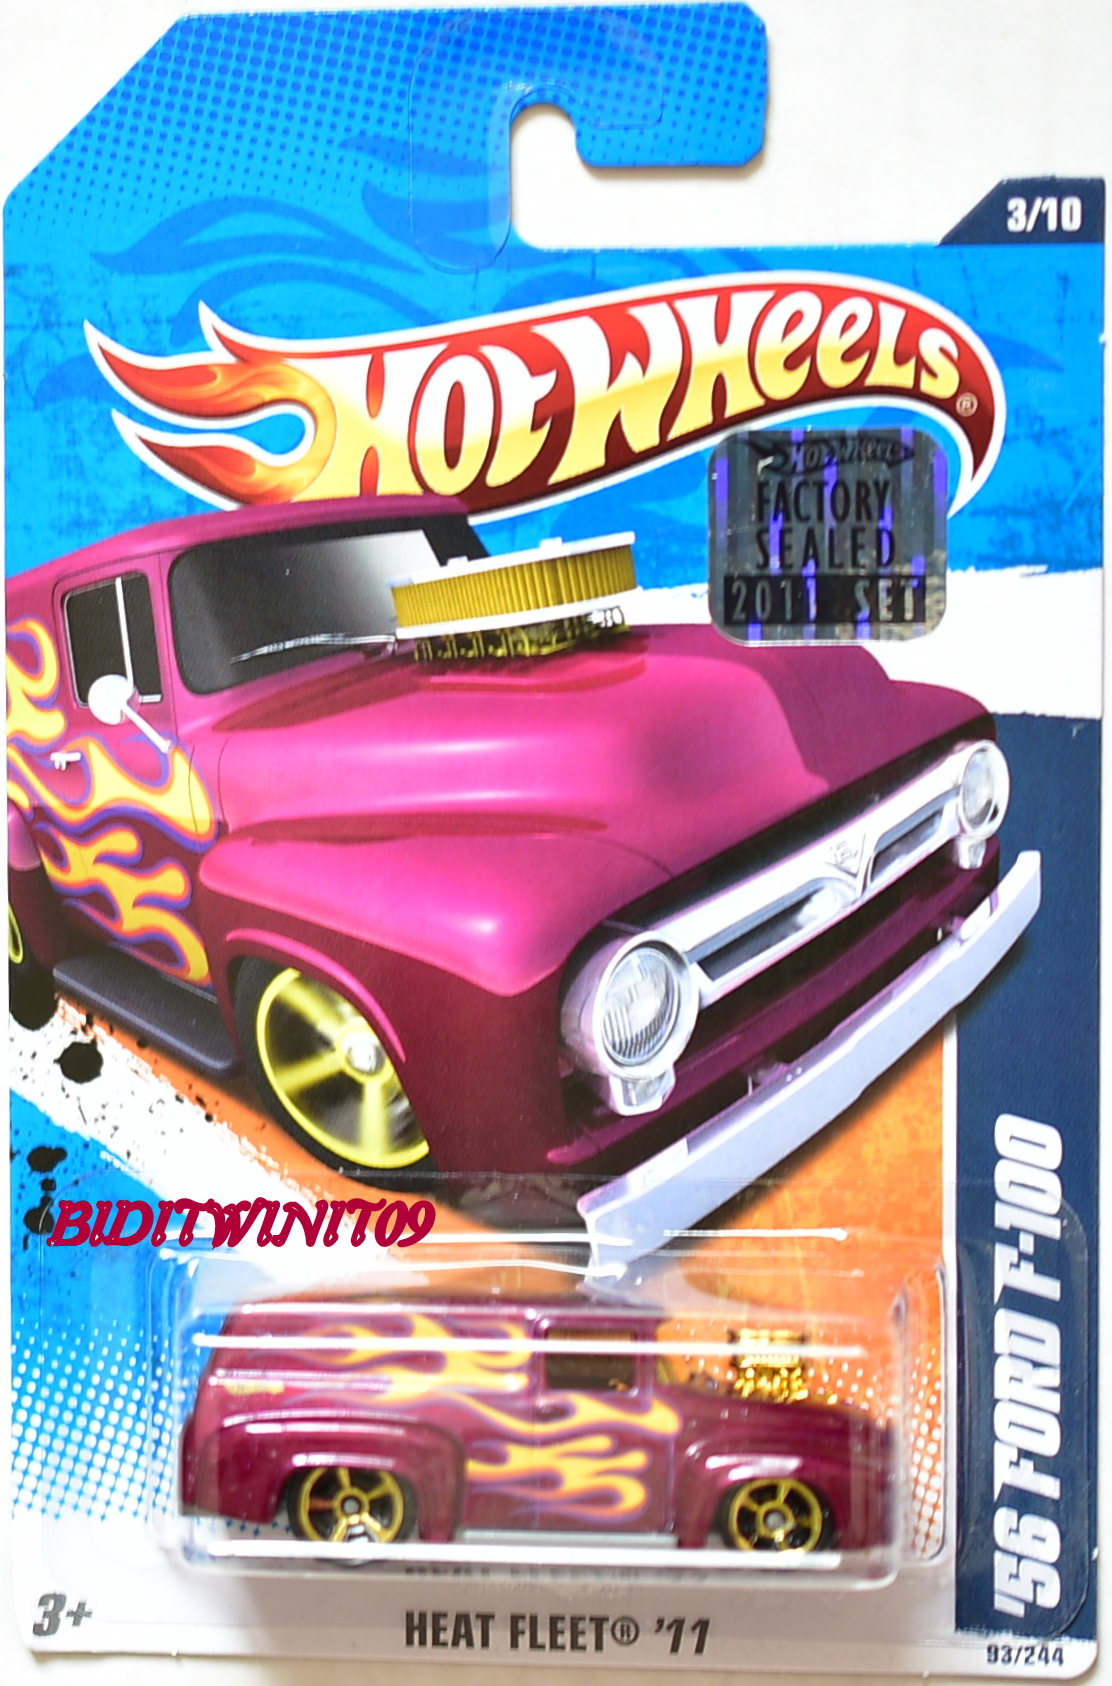 HOT WHEELS 2011 HEAT FLEET '56 FORD F-100 FACTORY SEALED